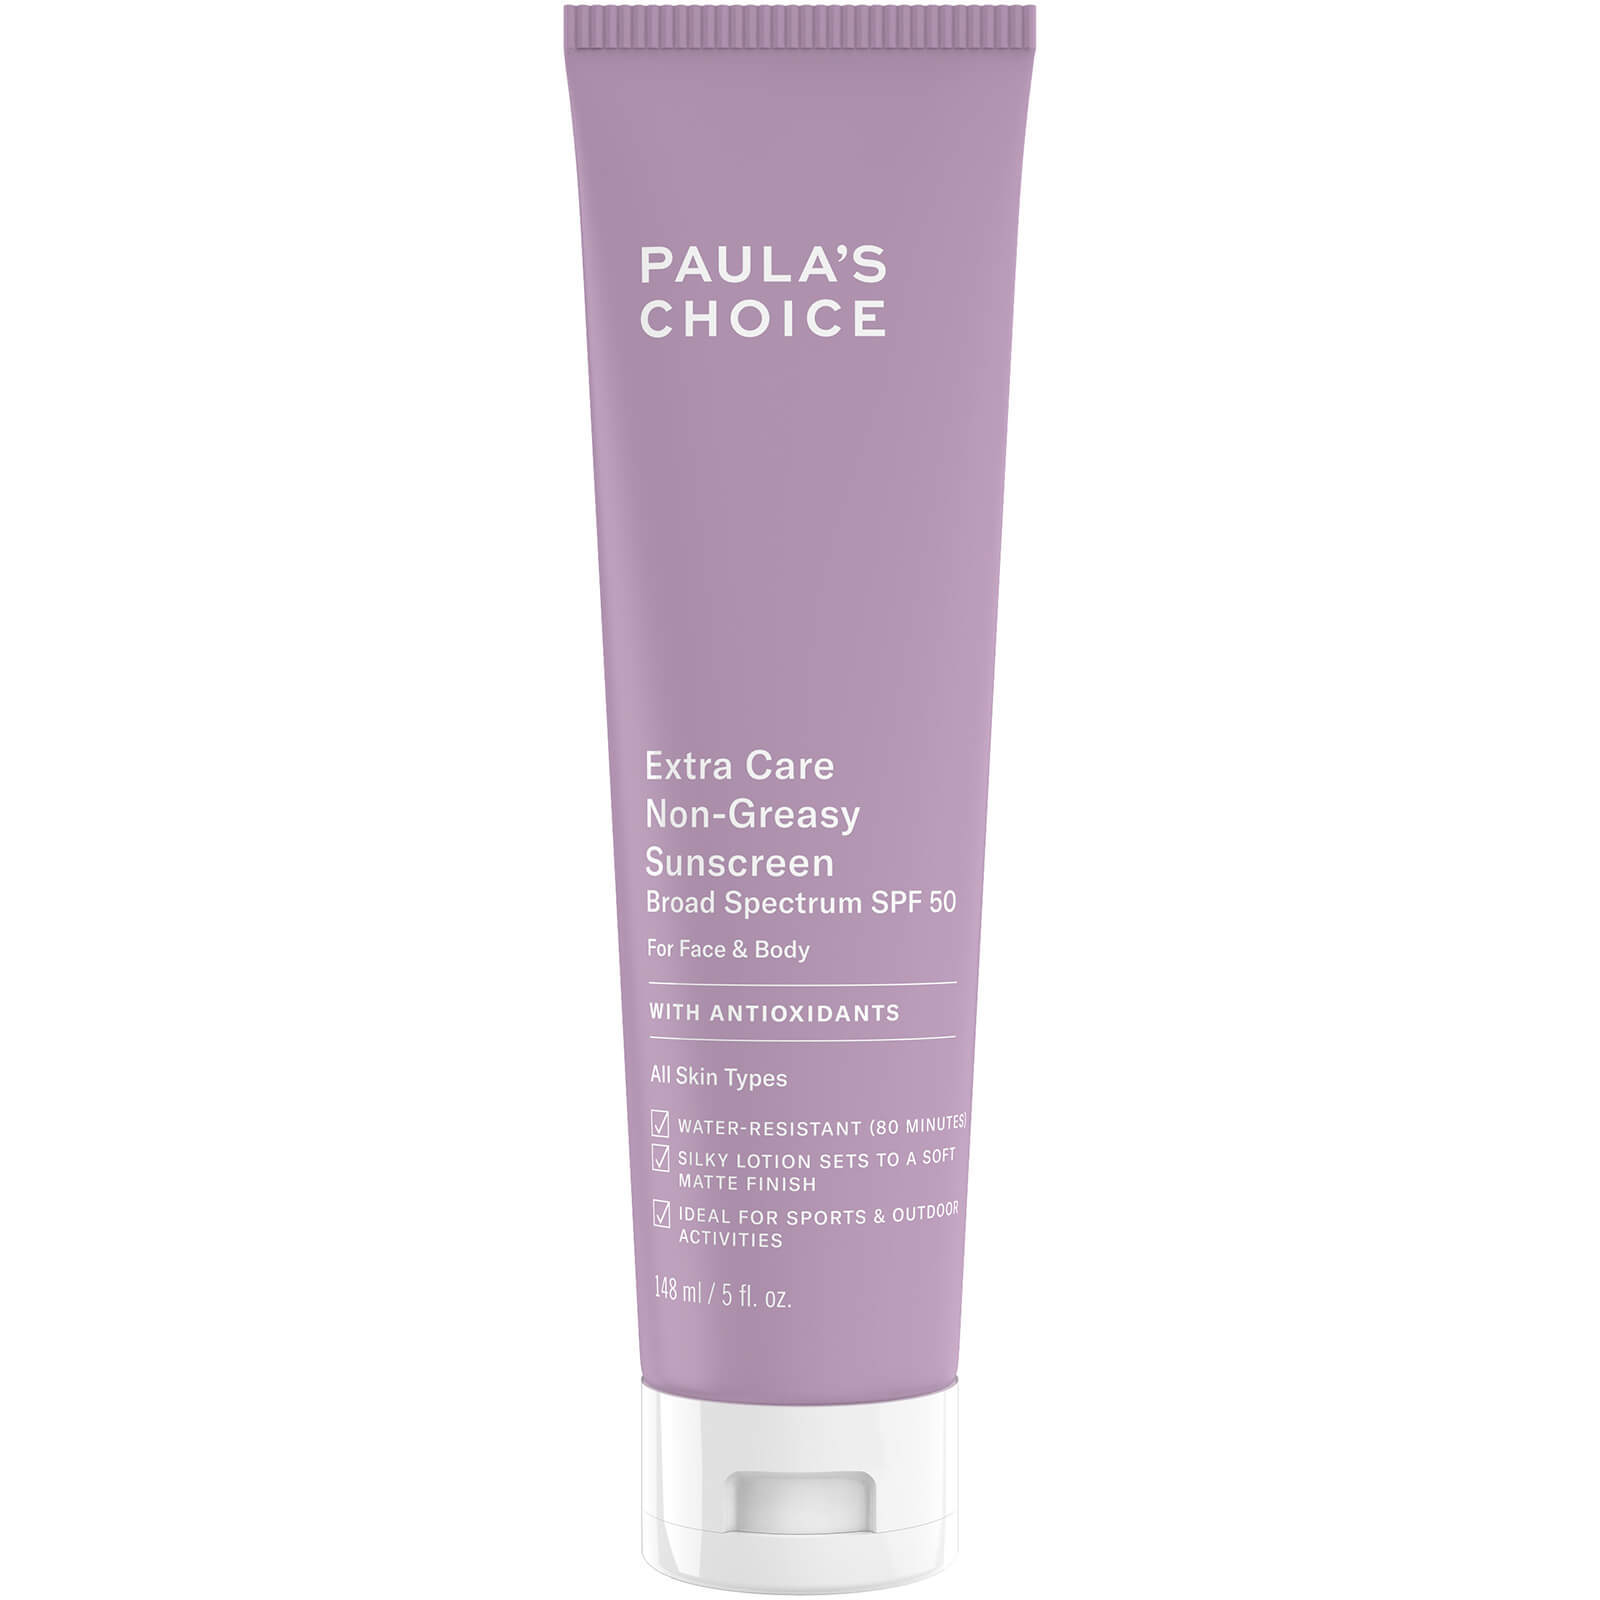 Крем Paula's Choice Extra Care Non-Greasy Sunscreen SPF 50 with Antioxidants 148 мл